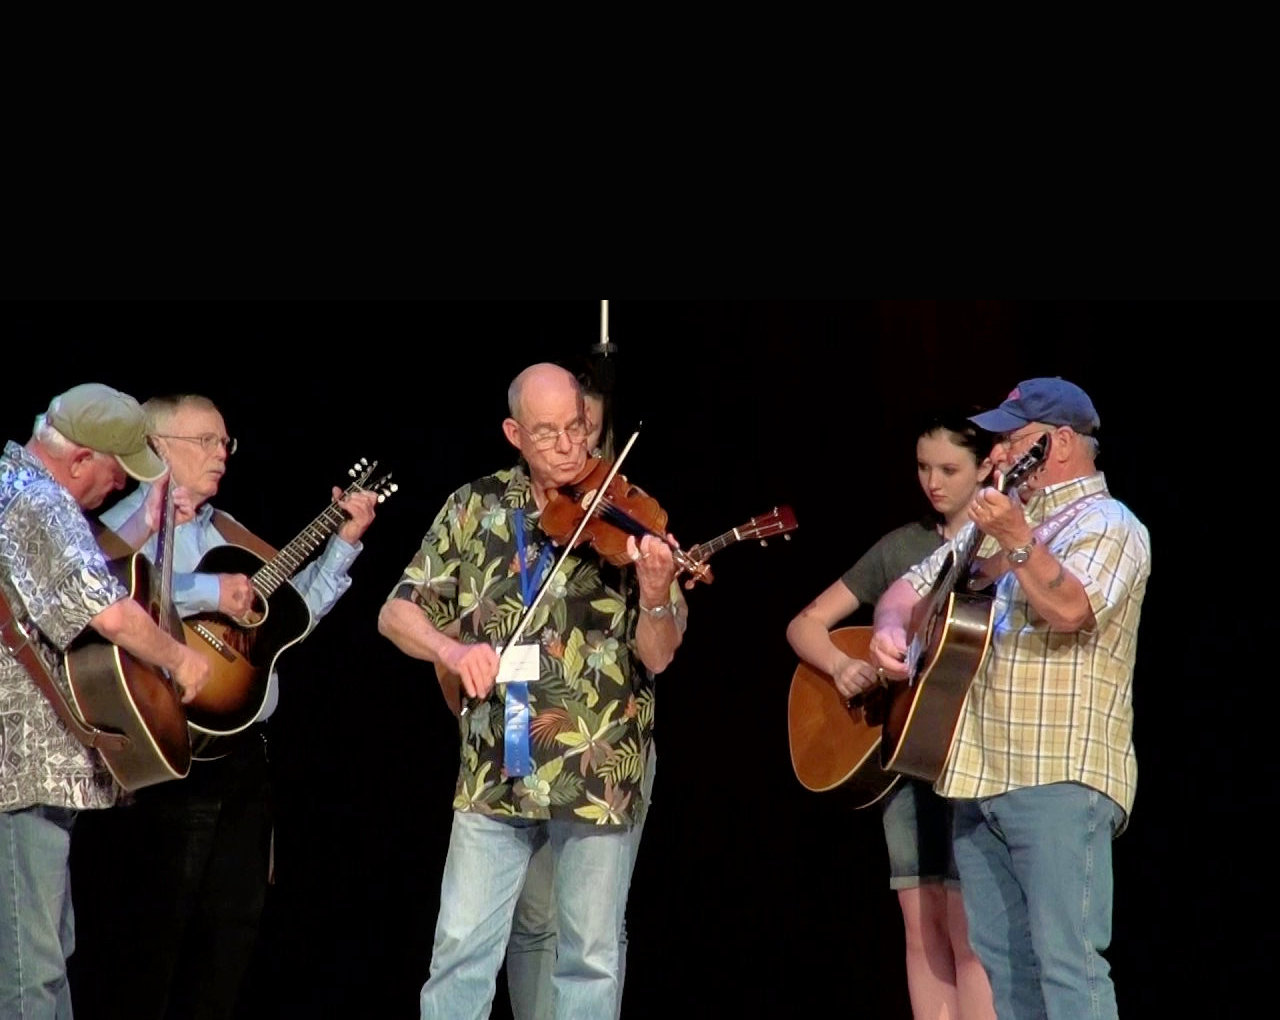 Welcome to The National Oldtime Fiddlers' Contest & Festival